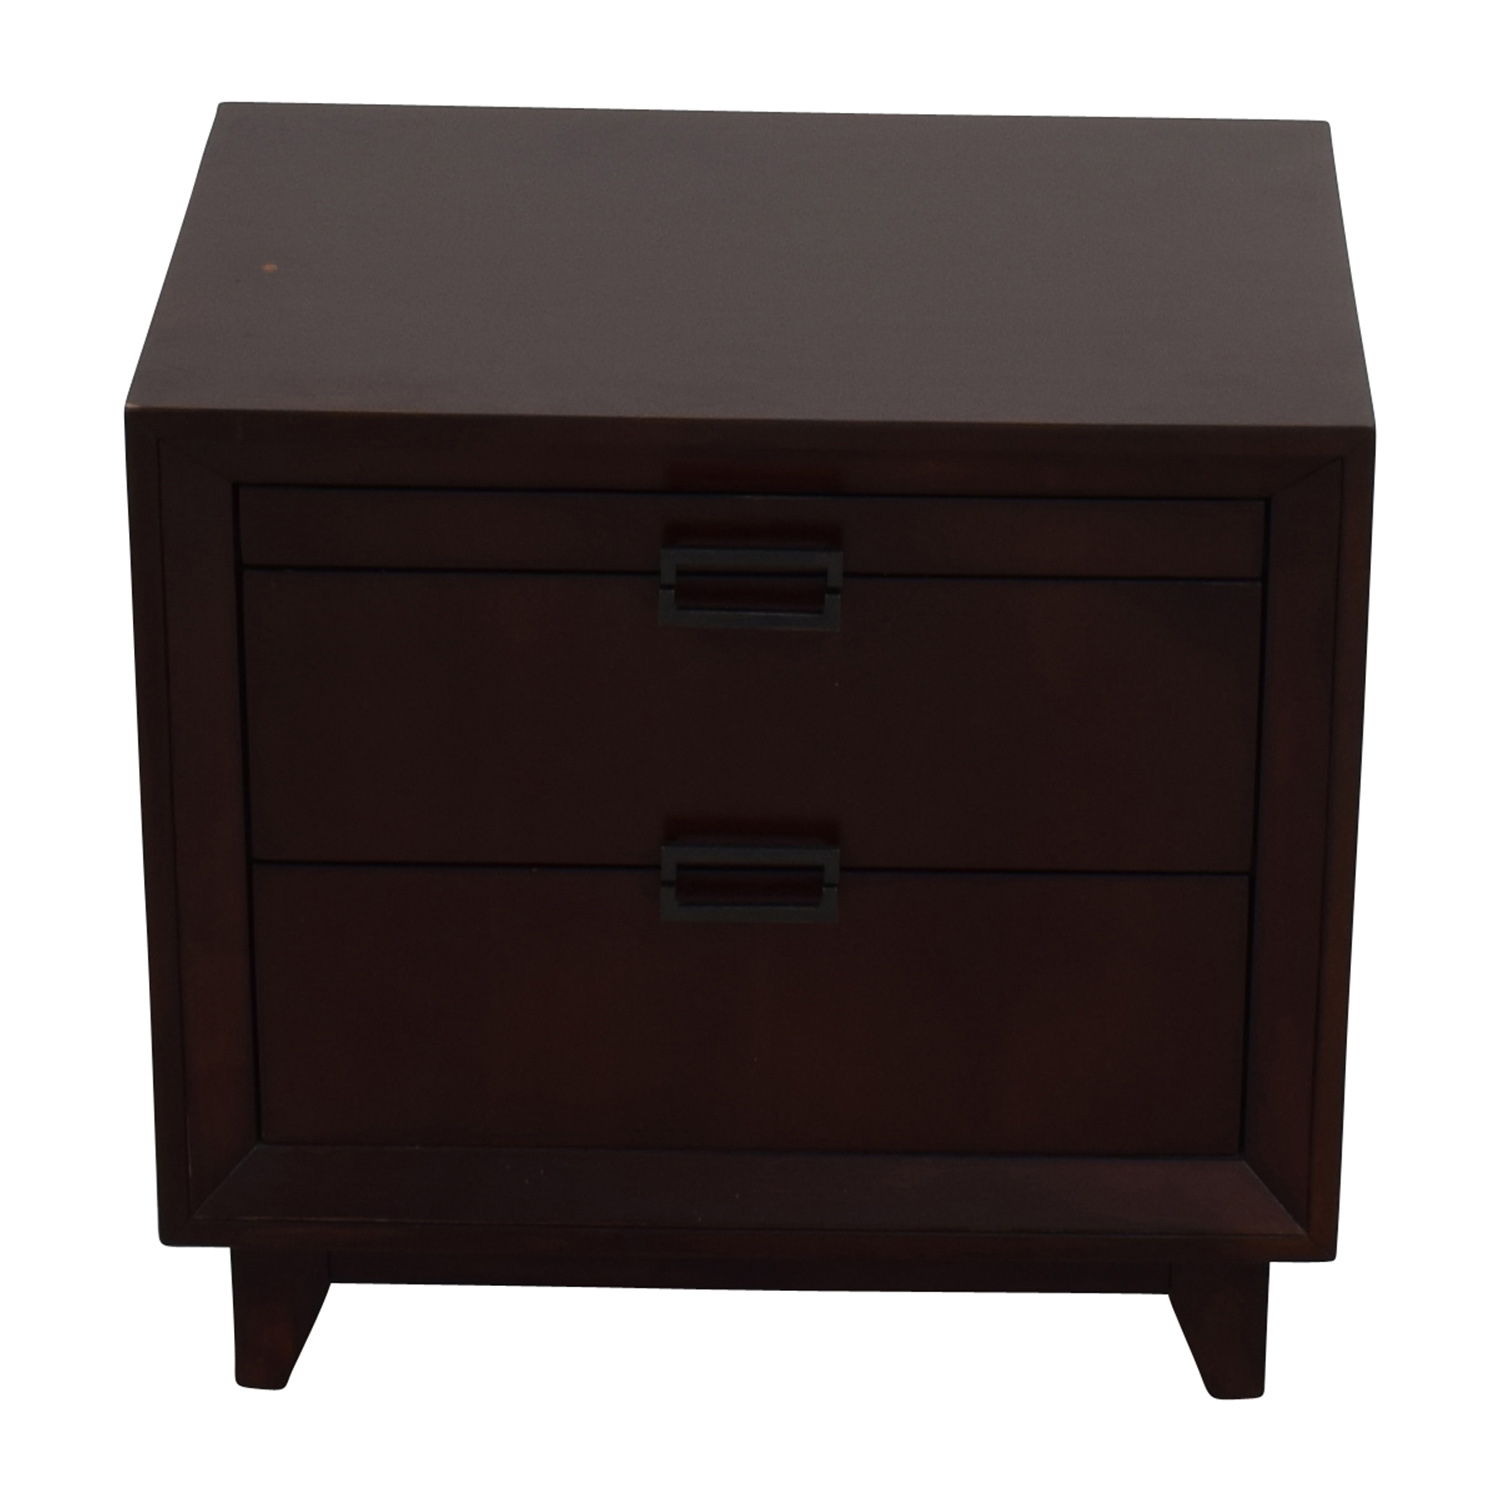 Raymour and Flanigan Dark Wood Nightstand / End Tables